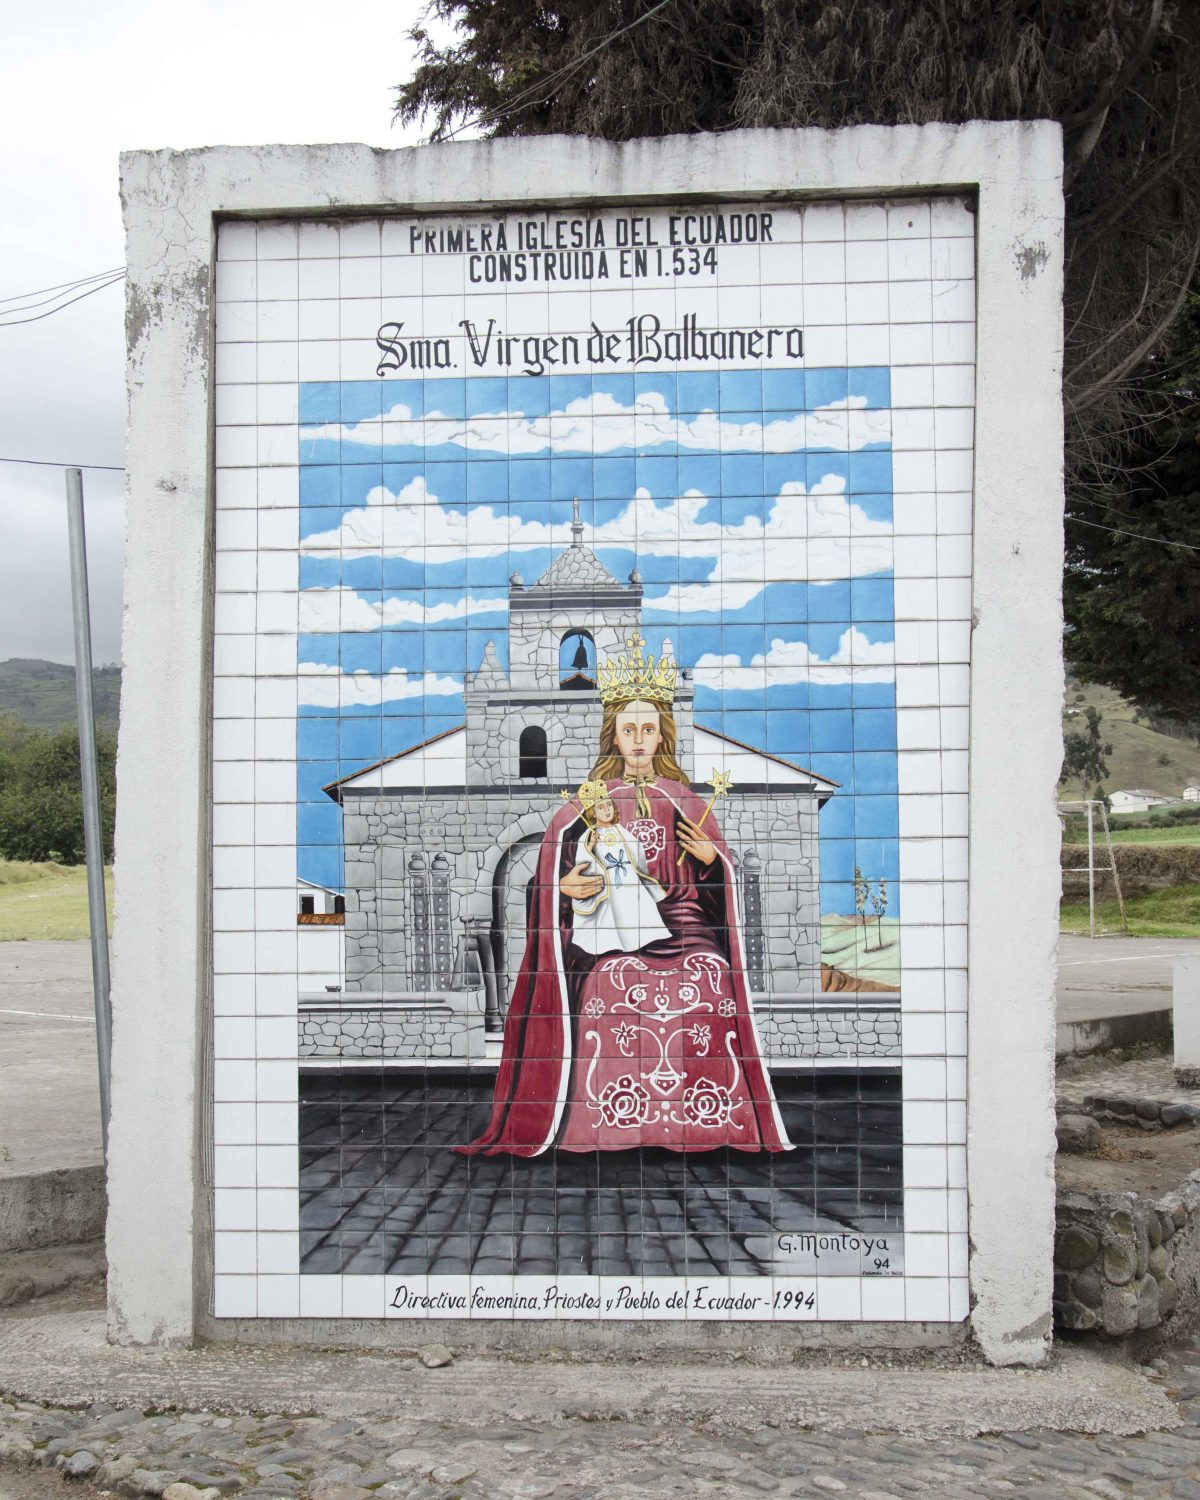 Tilework near the oldest church in Ecuador, the Iglesia de Balbanera, Colta | © Angela Drake